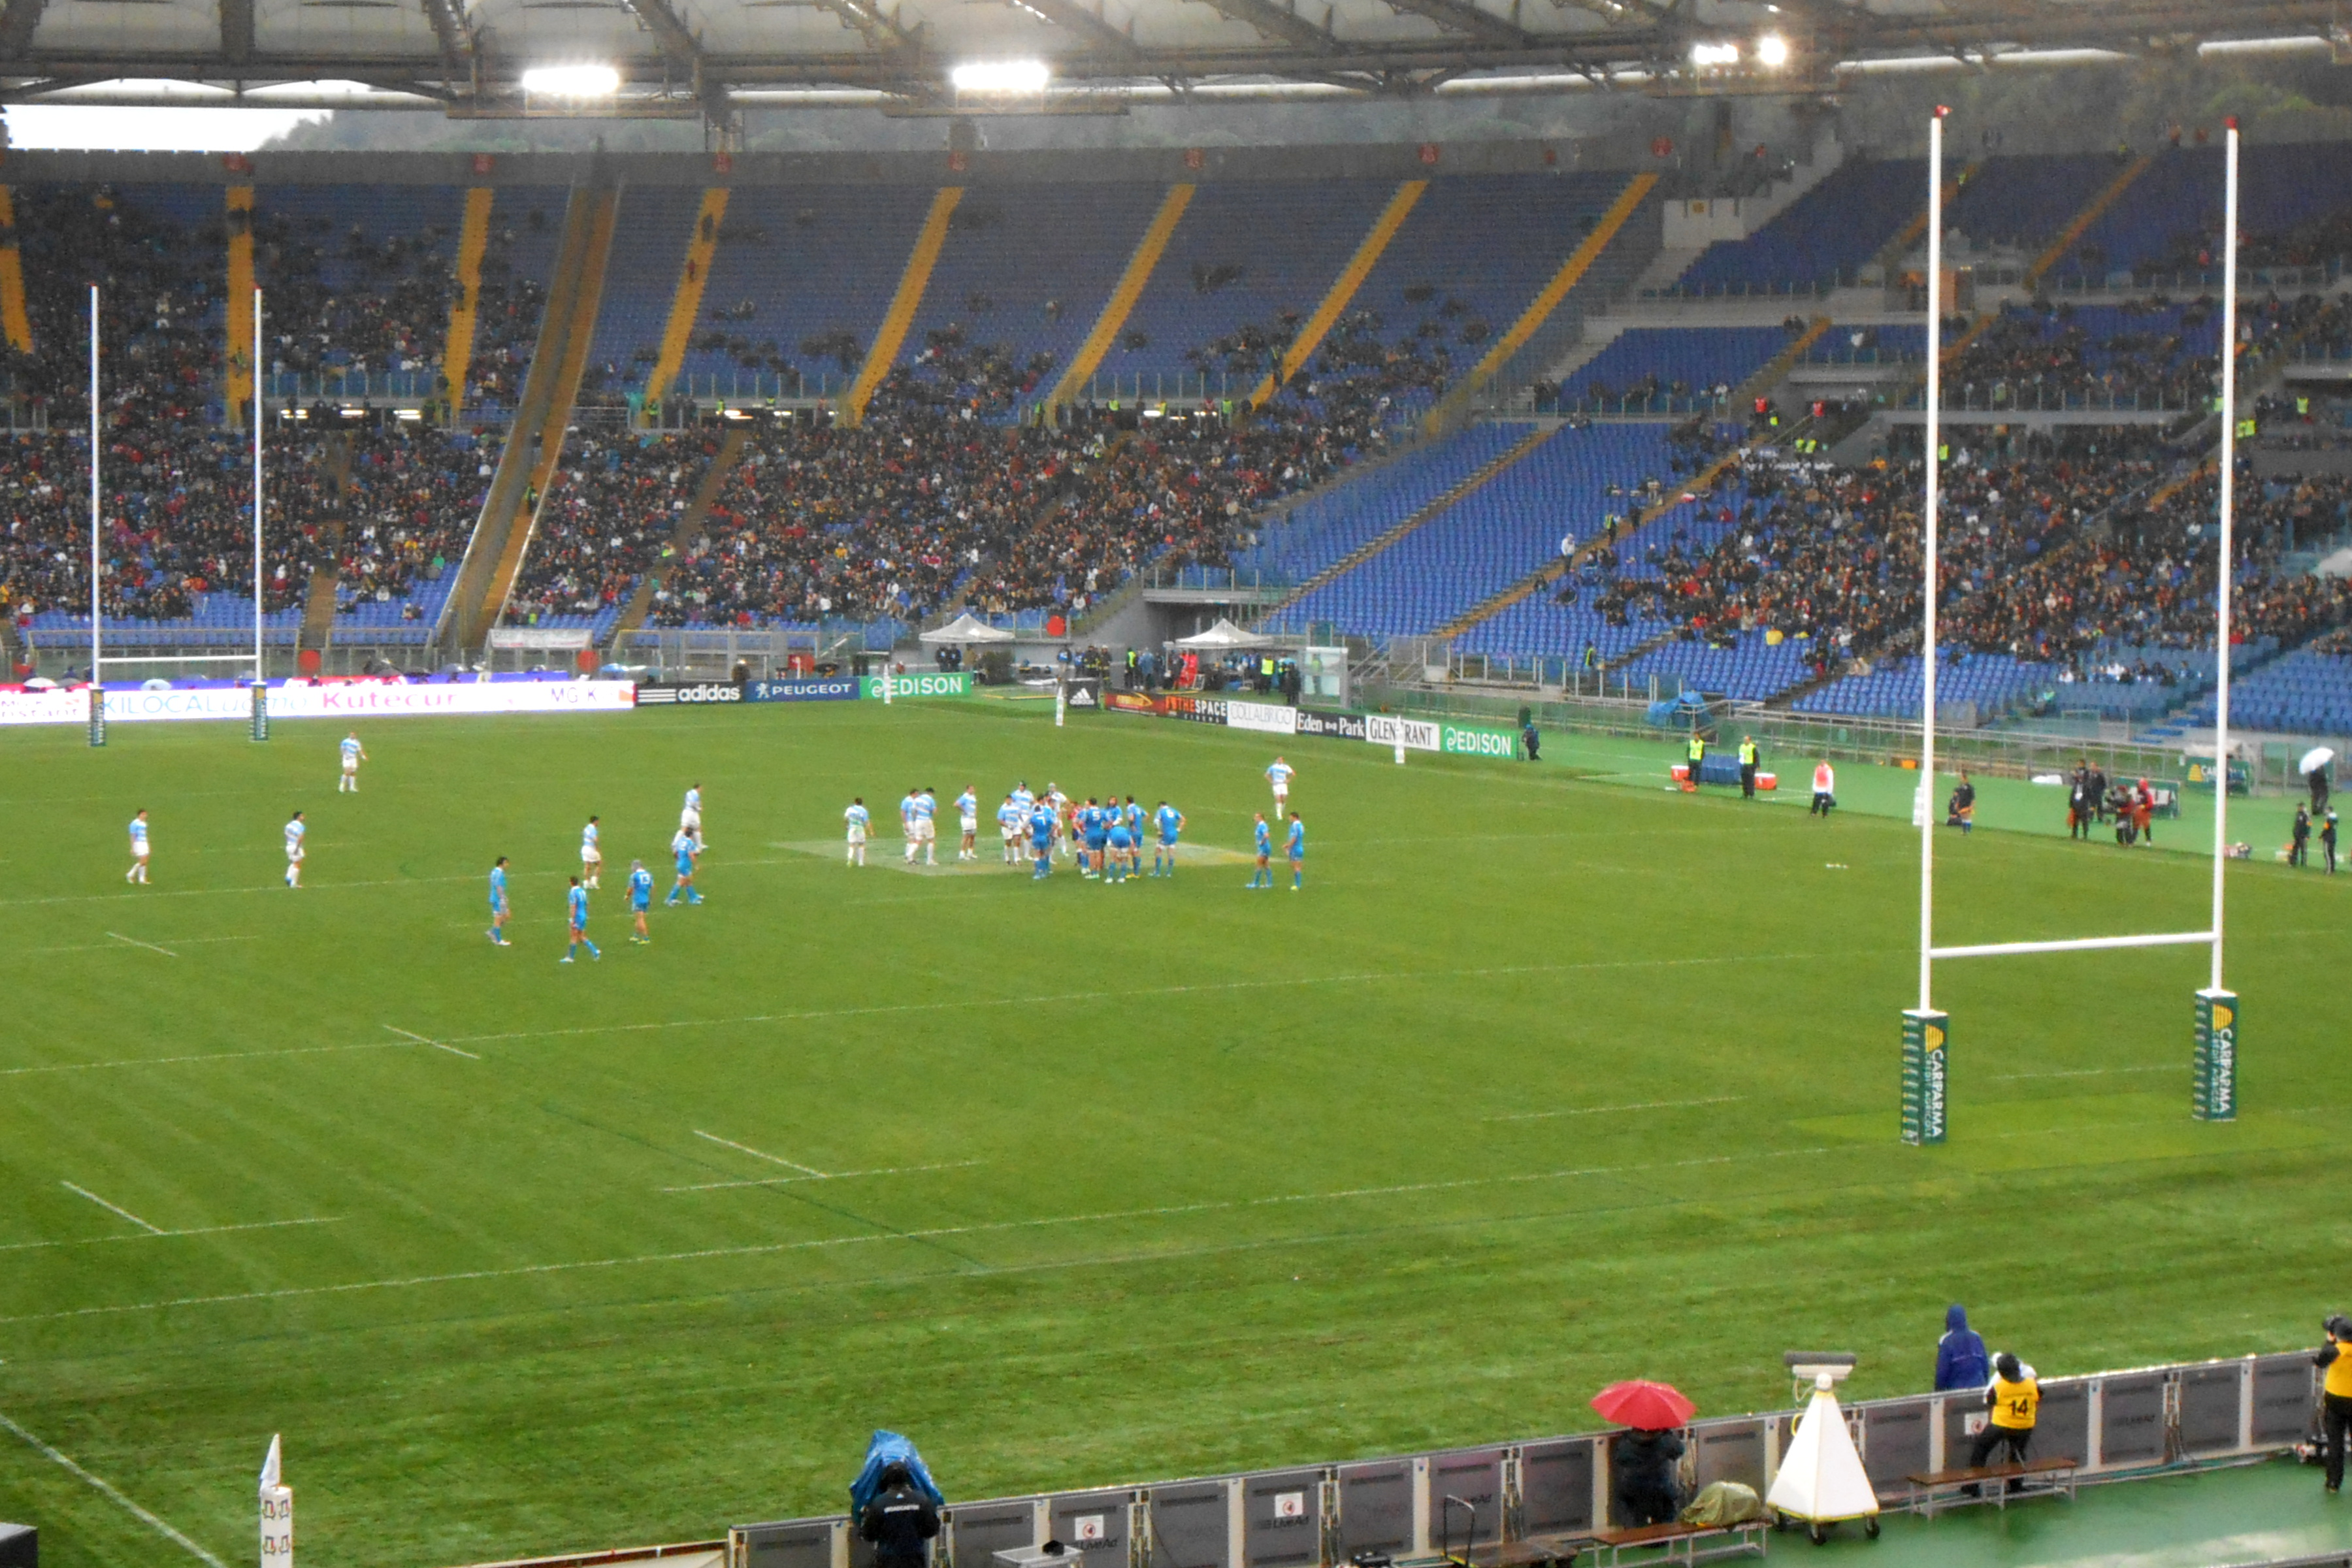 File:Rugby Italy vs Argentina 2013.jpg - Wikimedia Commons